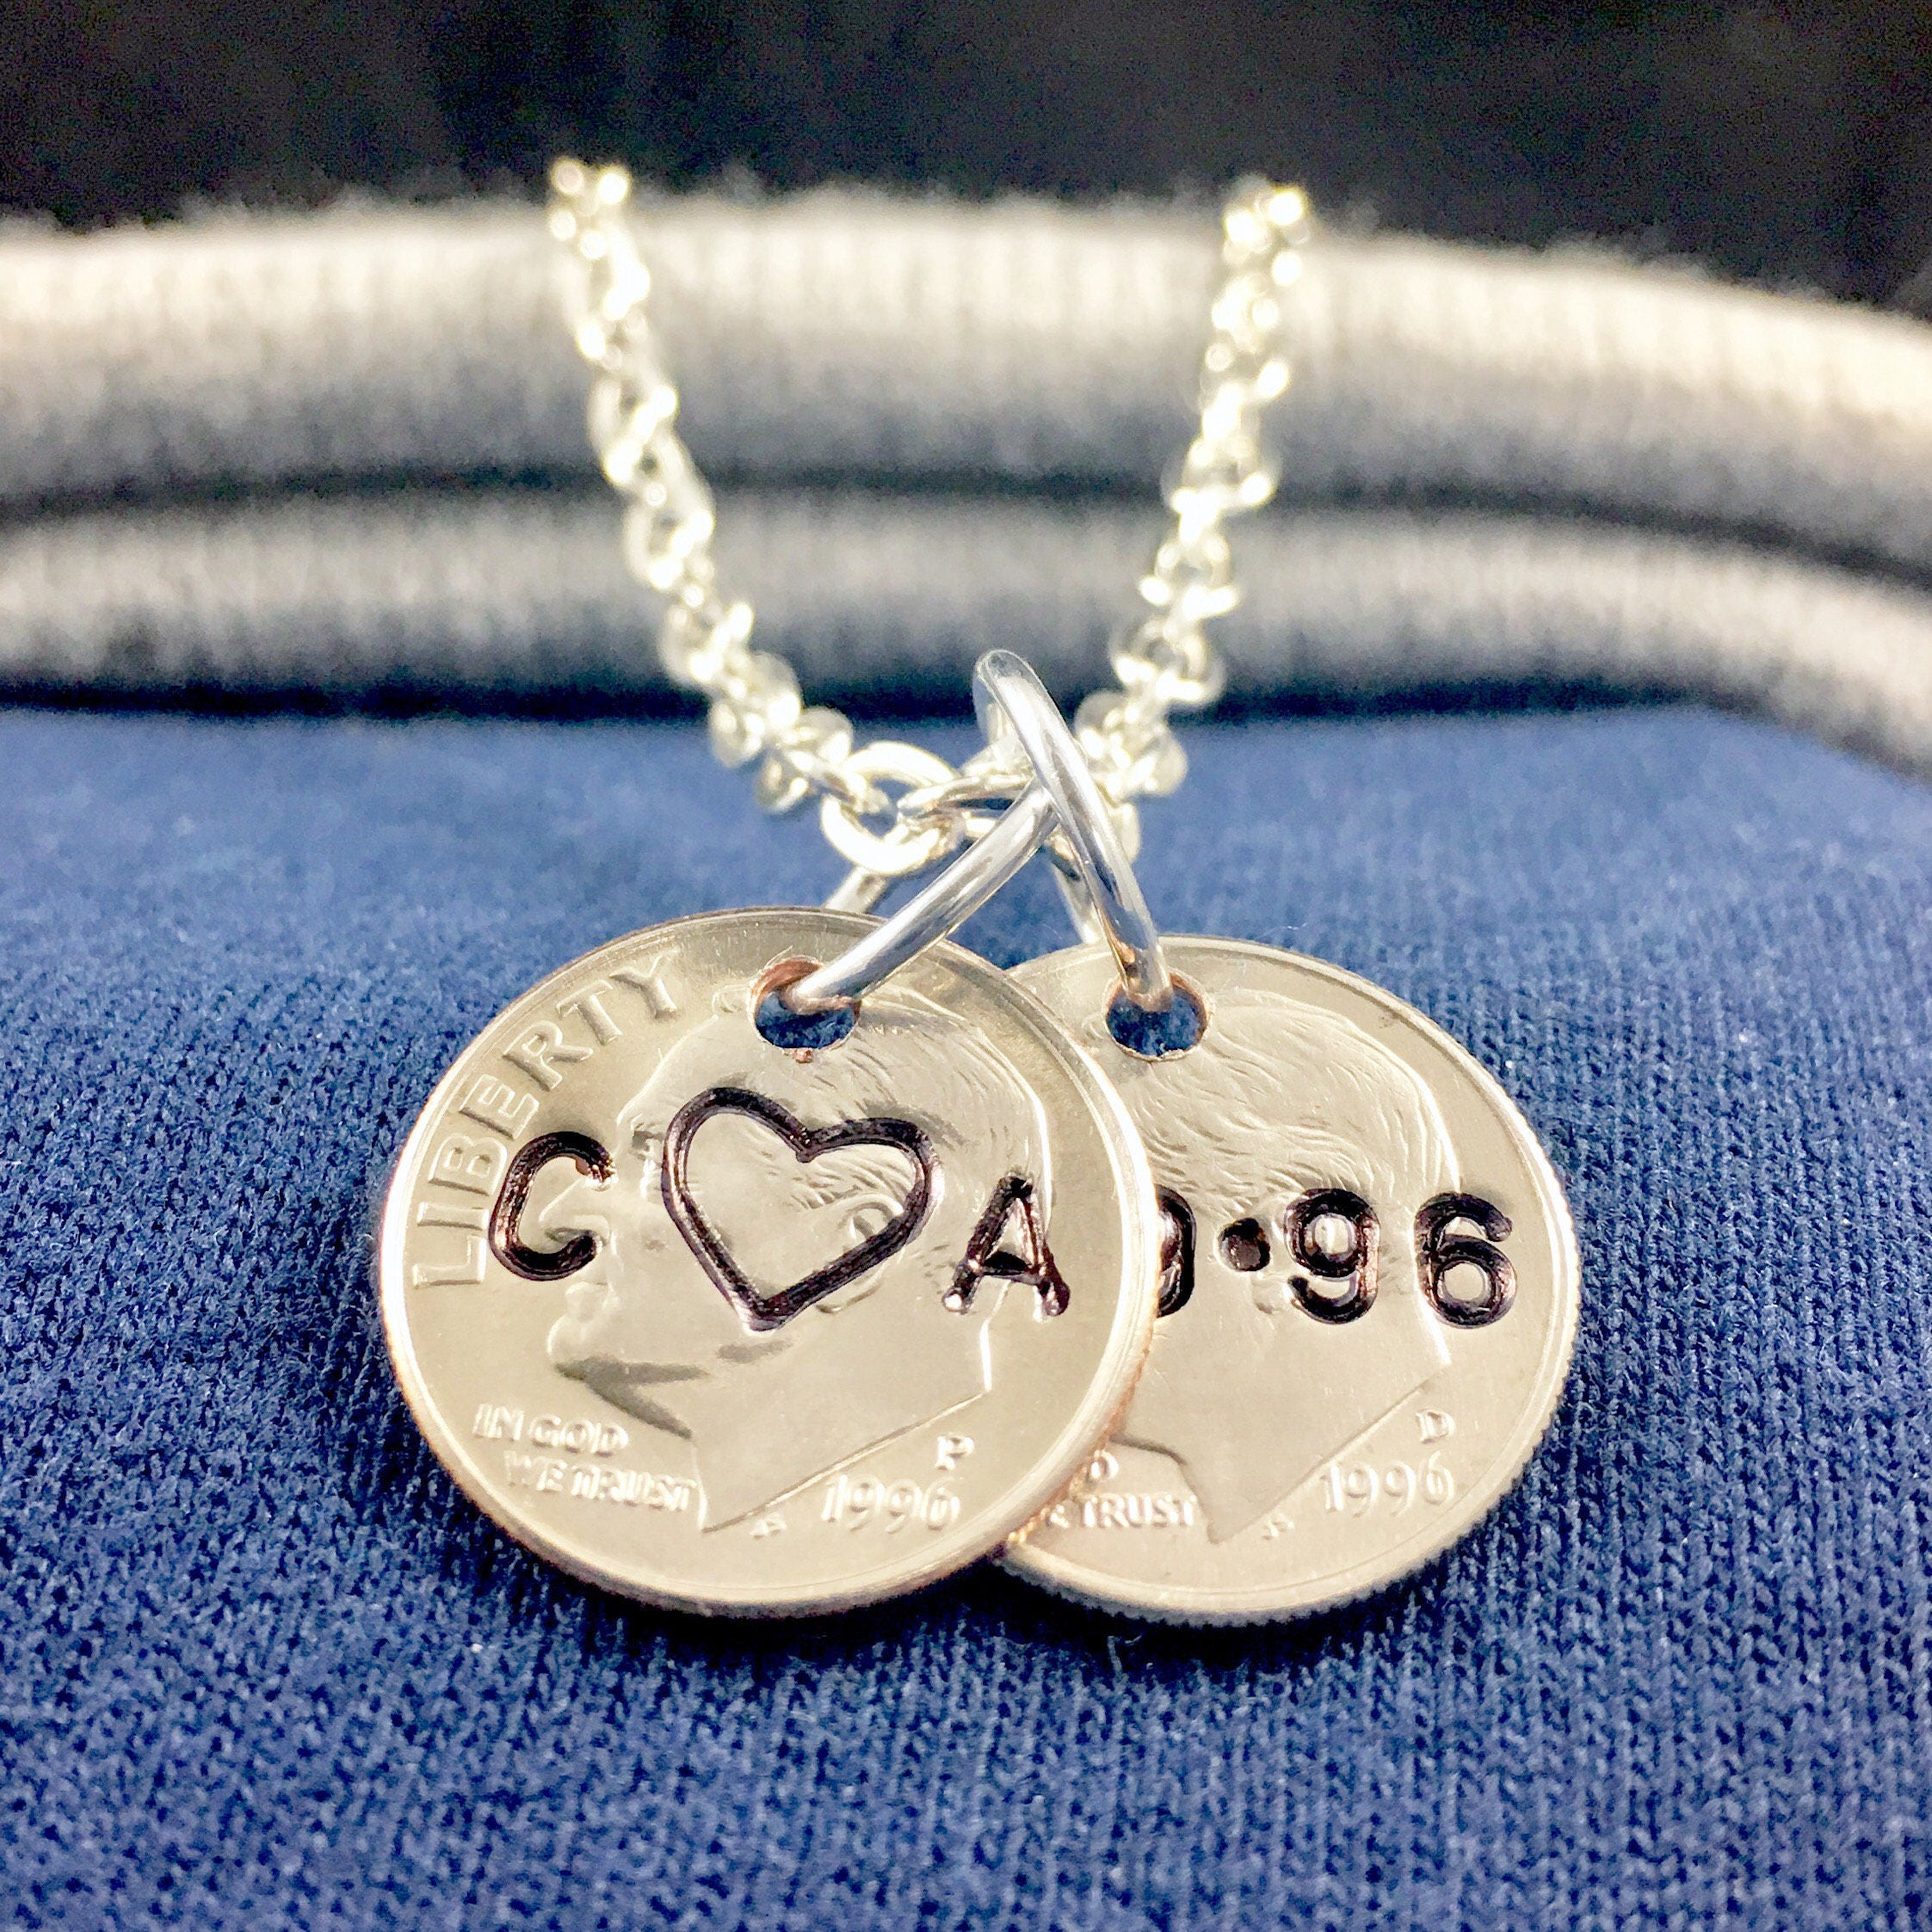 20th Wedding Anniversary Gift Ideas For Husband: 20th Wedding Anniversary Gift For Her 20th Anniversary Gift